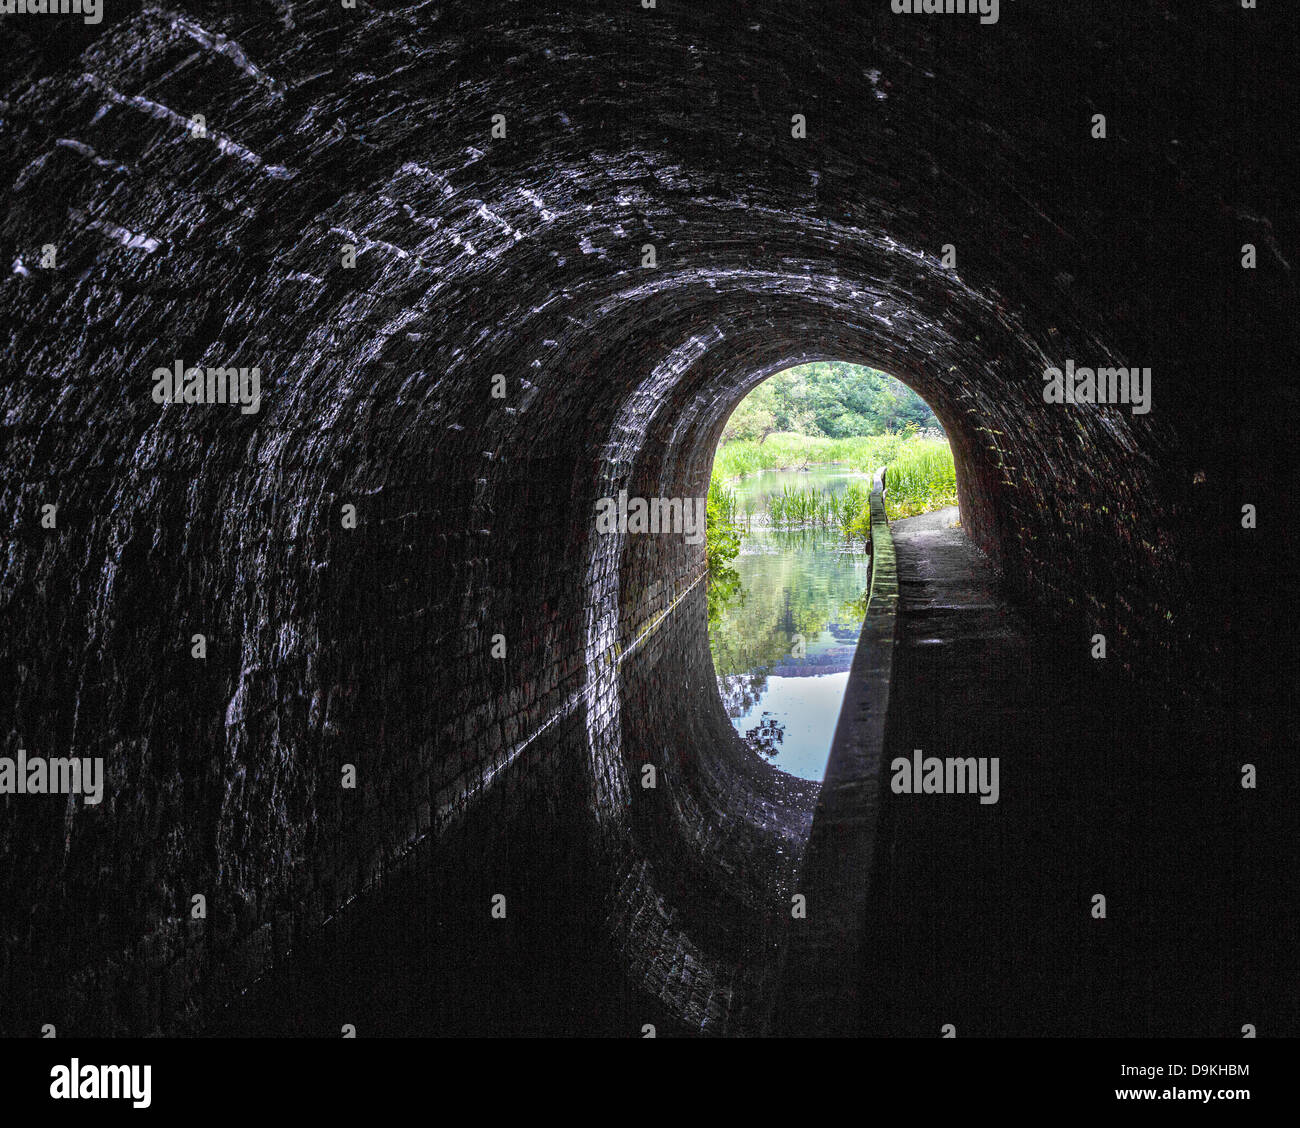 Inside the short Gregory Tunnel on the Cromford Canal near Matlock in Derbyshire UK - Stock Image